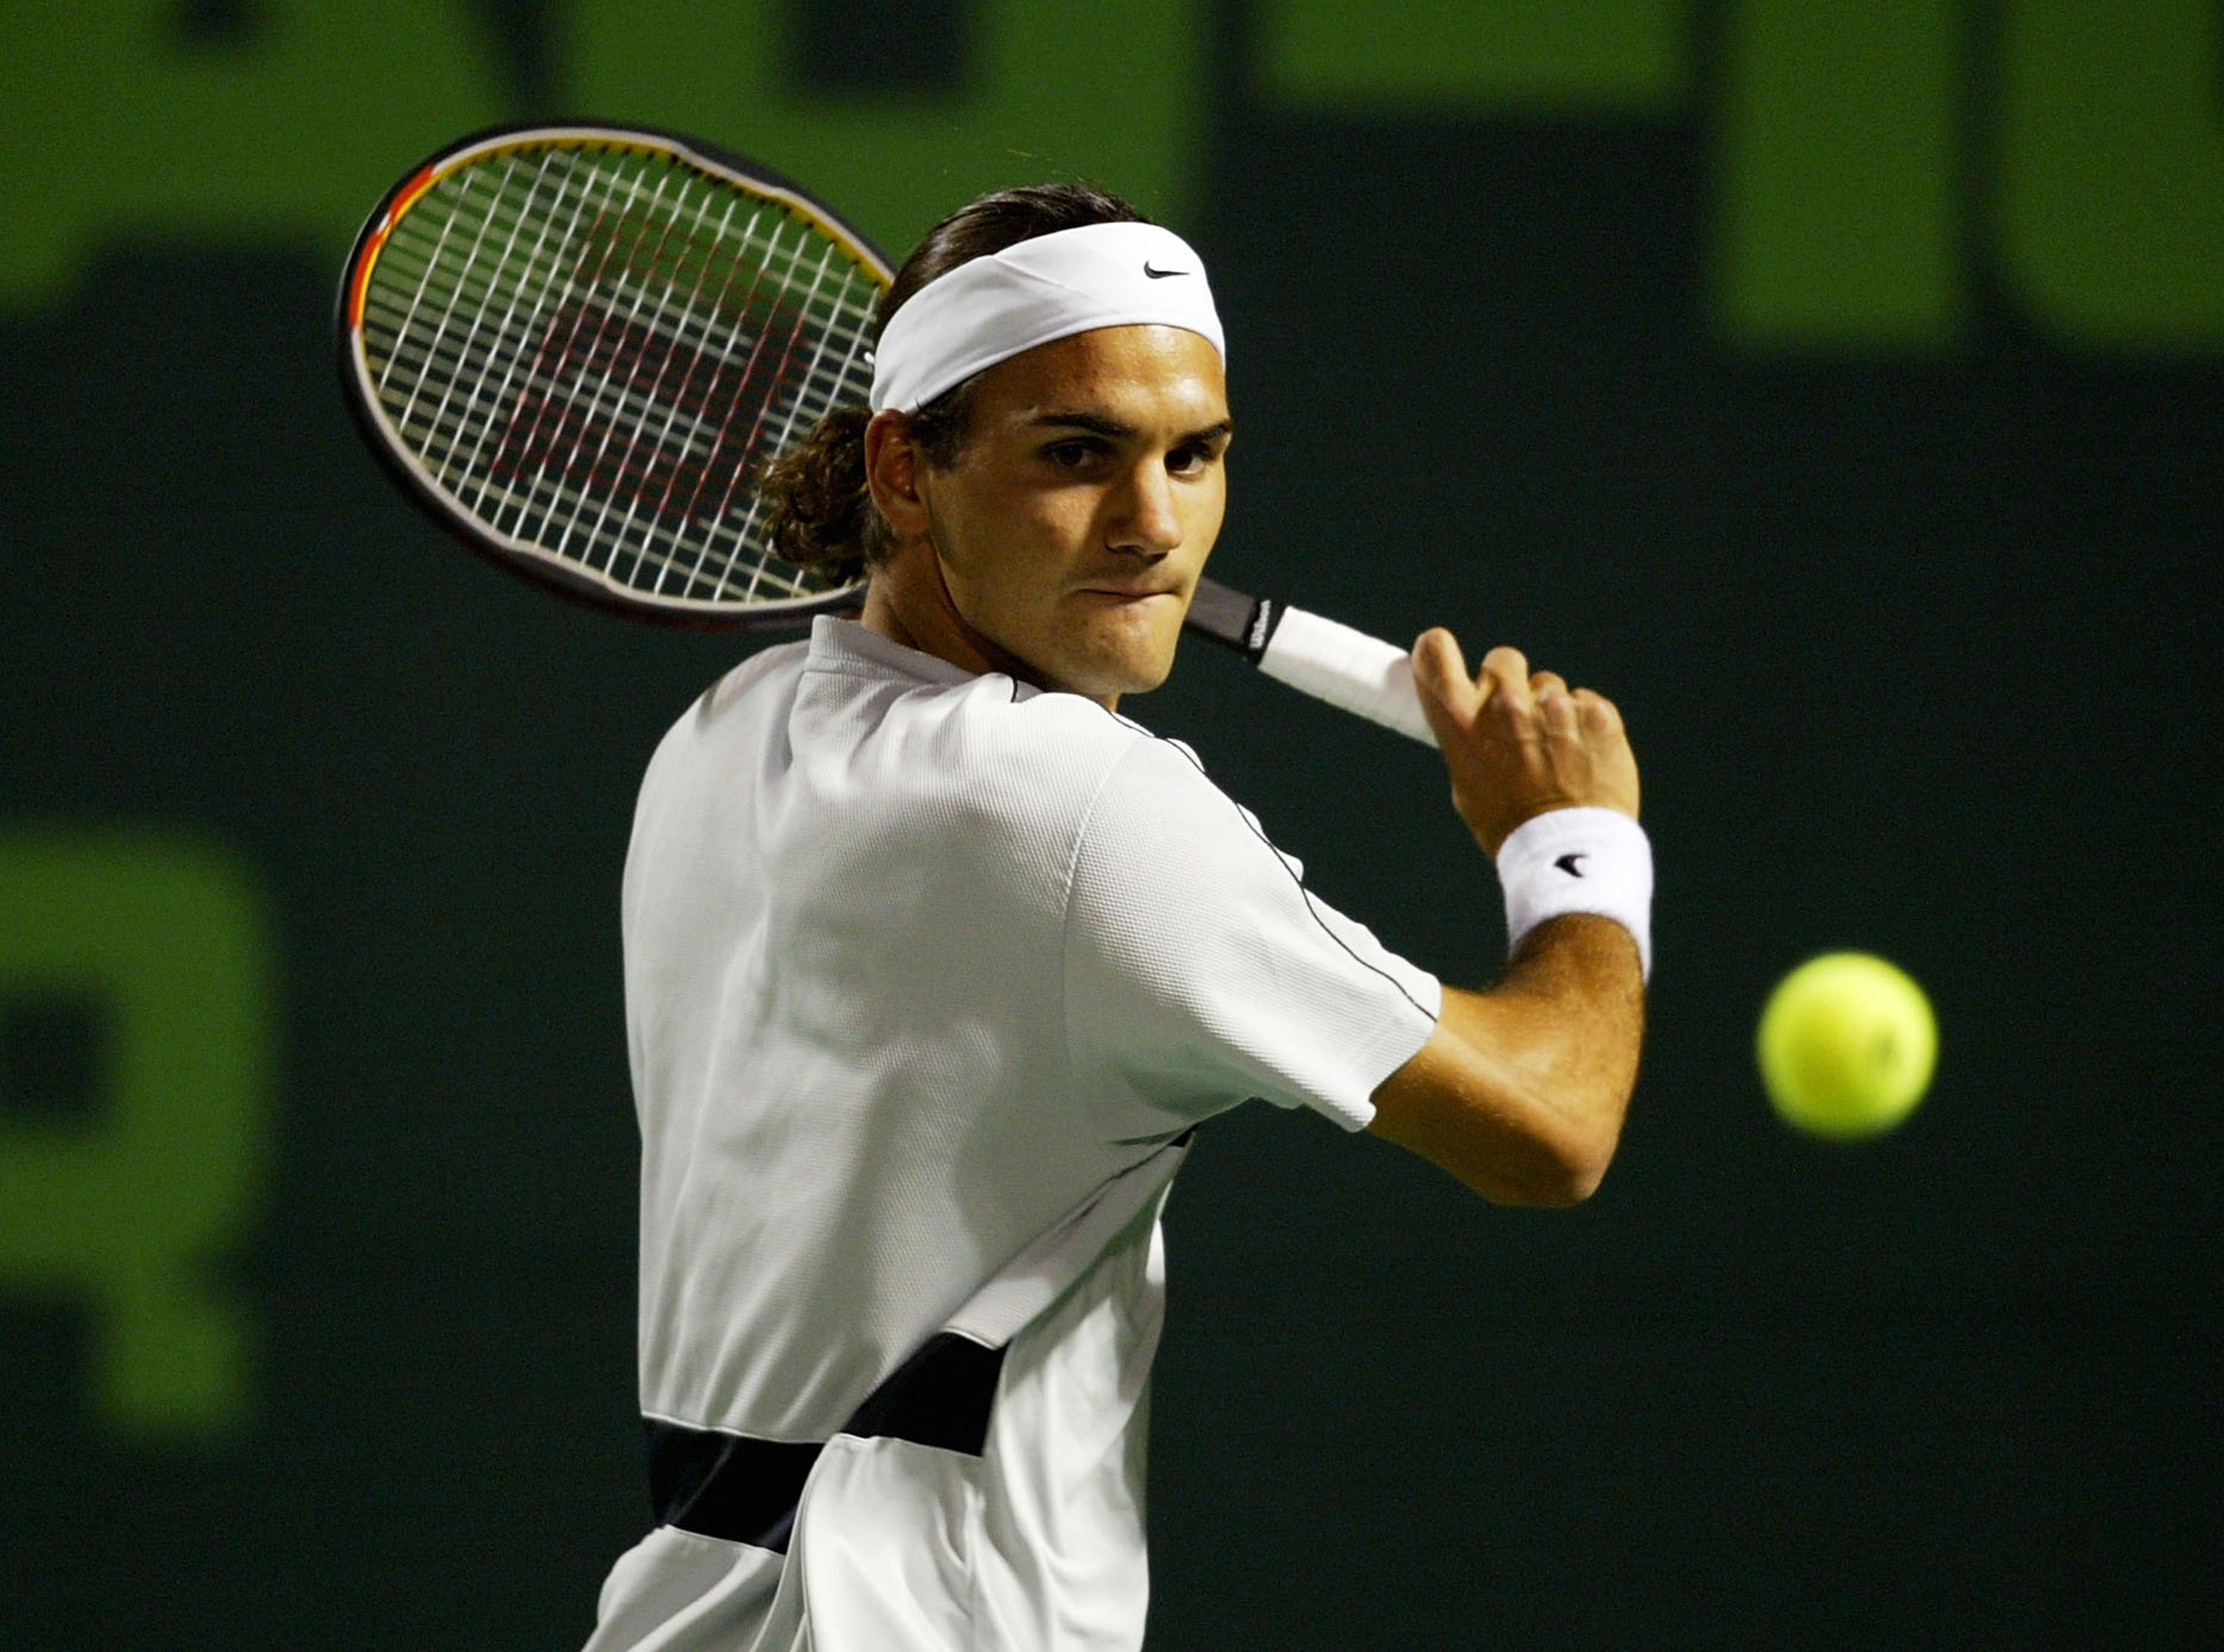 MIAMI - MARCH 28:  Roger Federer of Switzerland returns a shot against Rafael Nadal of Spain on March 28, 2004 during Nasdaq 100 Open  at the Crandon Park Tennis Center on Key Biscayne in Miami, Florida.  (Photo by Ezra Shaw/Getty Images)